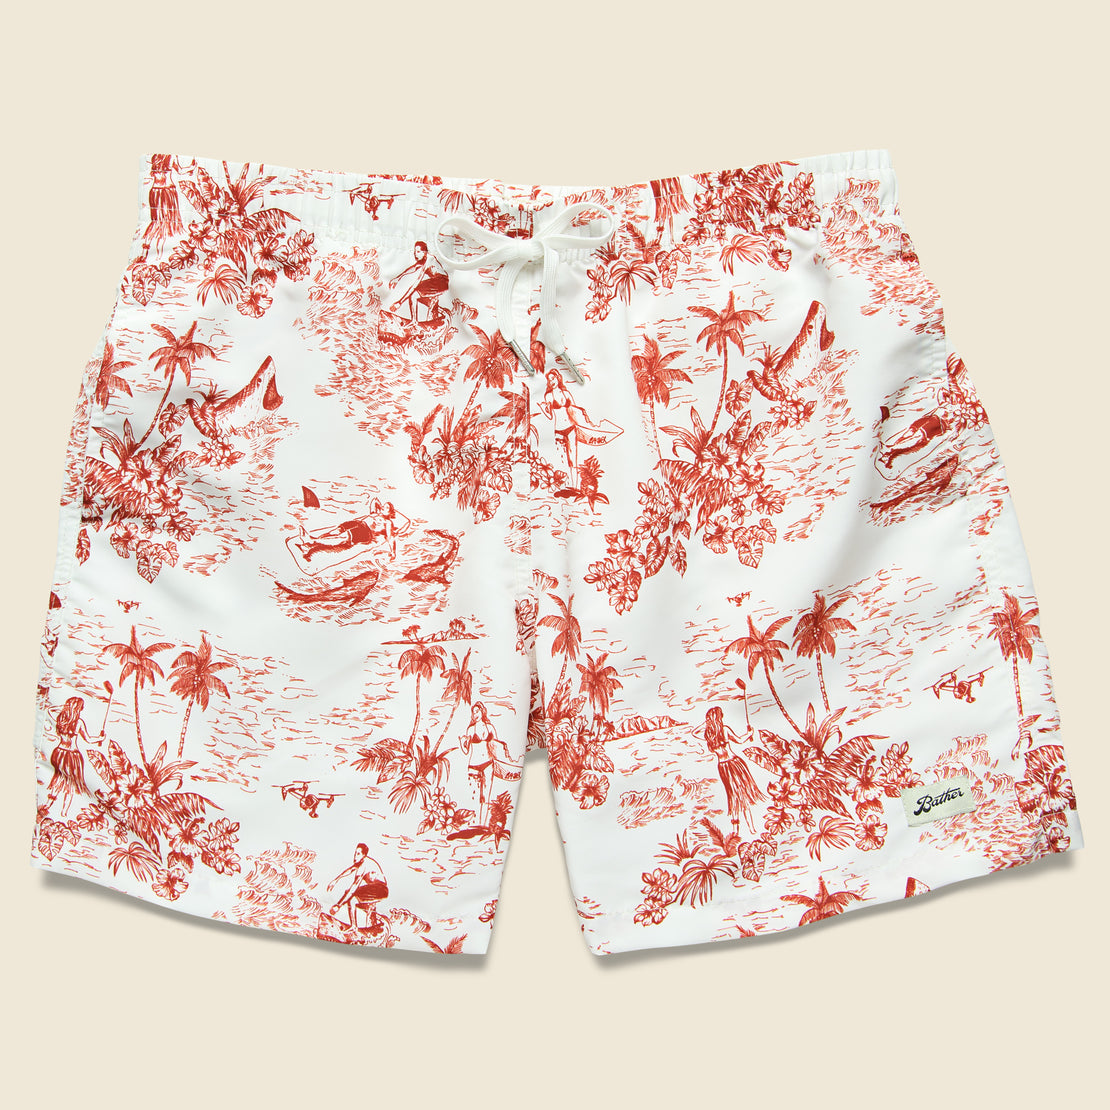 Bather Trunk Co. Canadian Toile Swim Trunk - Red/White